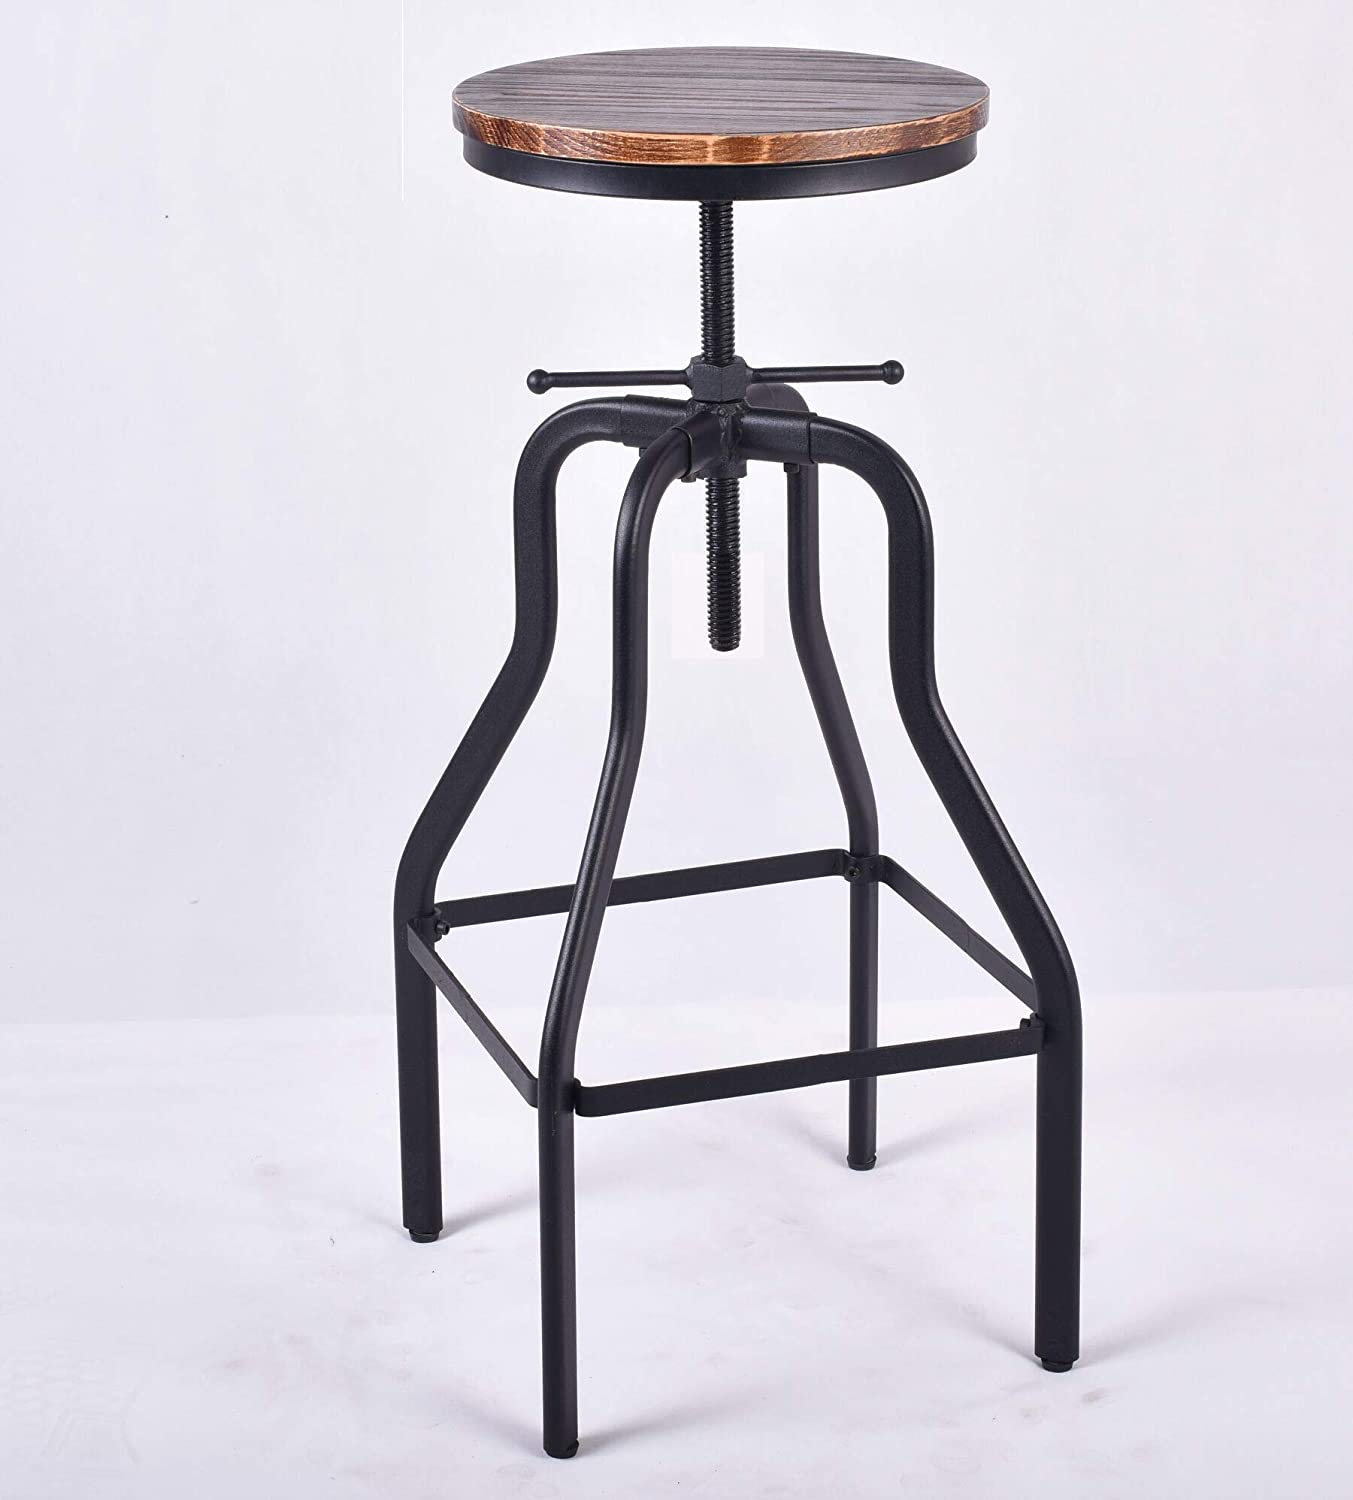 Diwhy Industrial Swivel Bar Stools Adjustable Height Pinewood Kitchen Dining Chair Bar Stool